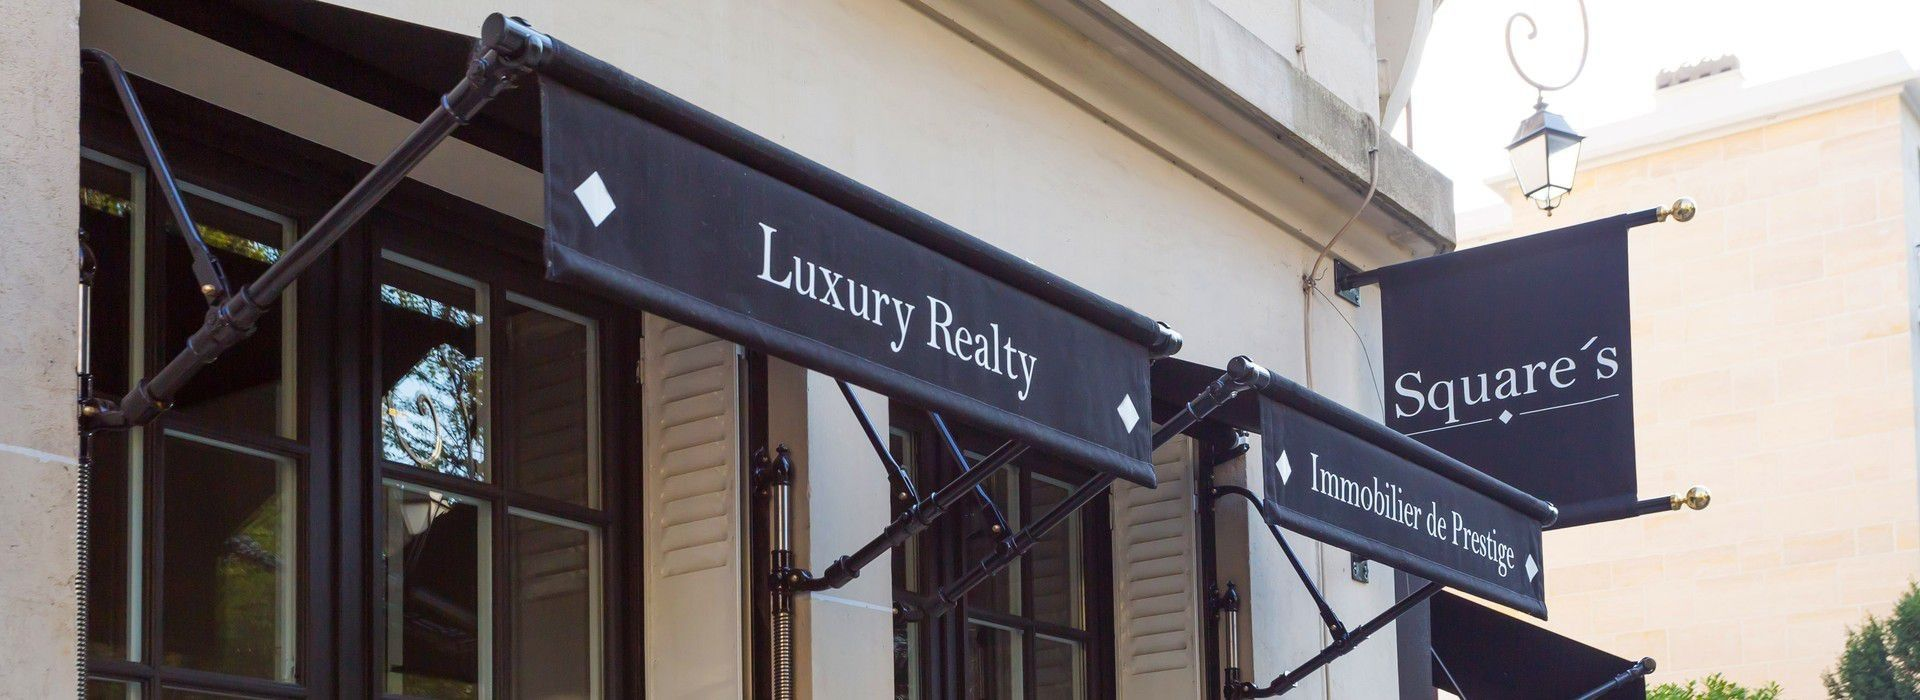 Contact paris neuilly luxury realty realestate